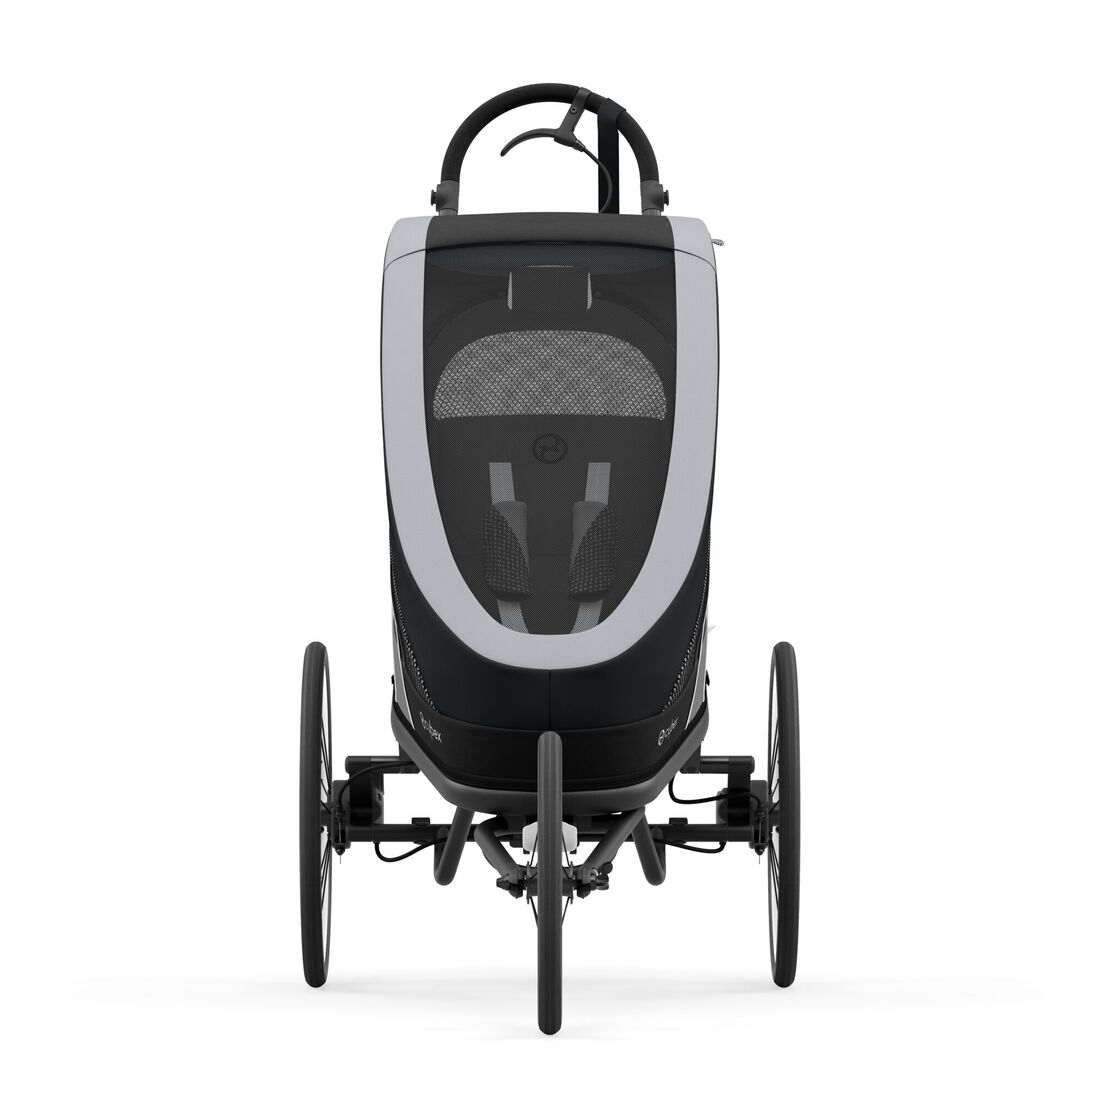 CYBEX Zeno One Box - All Black in All Black large image number 1